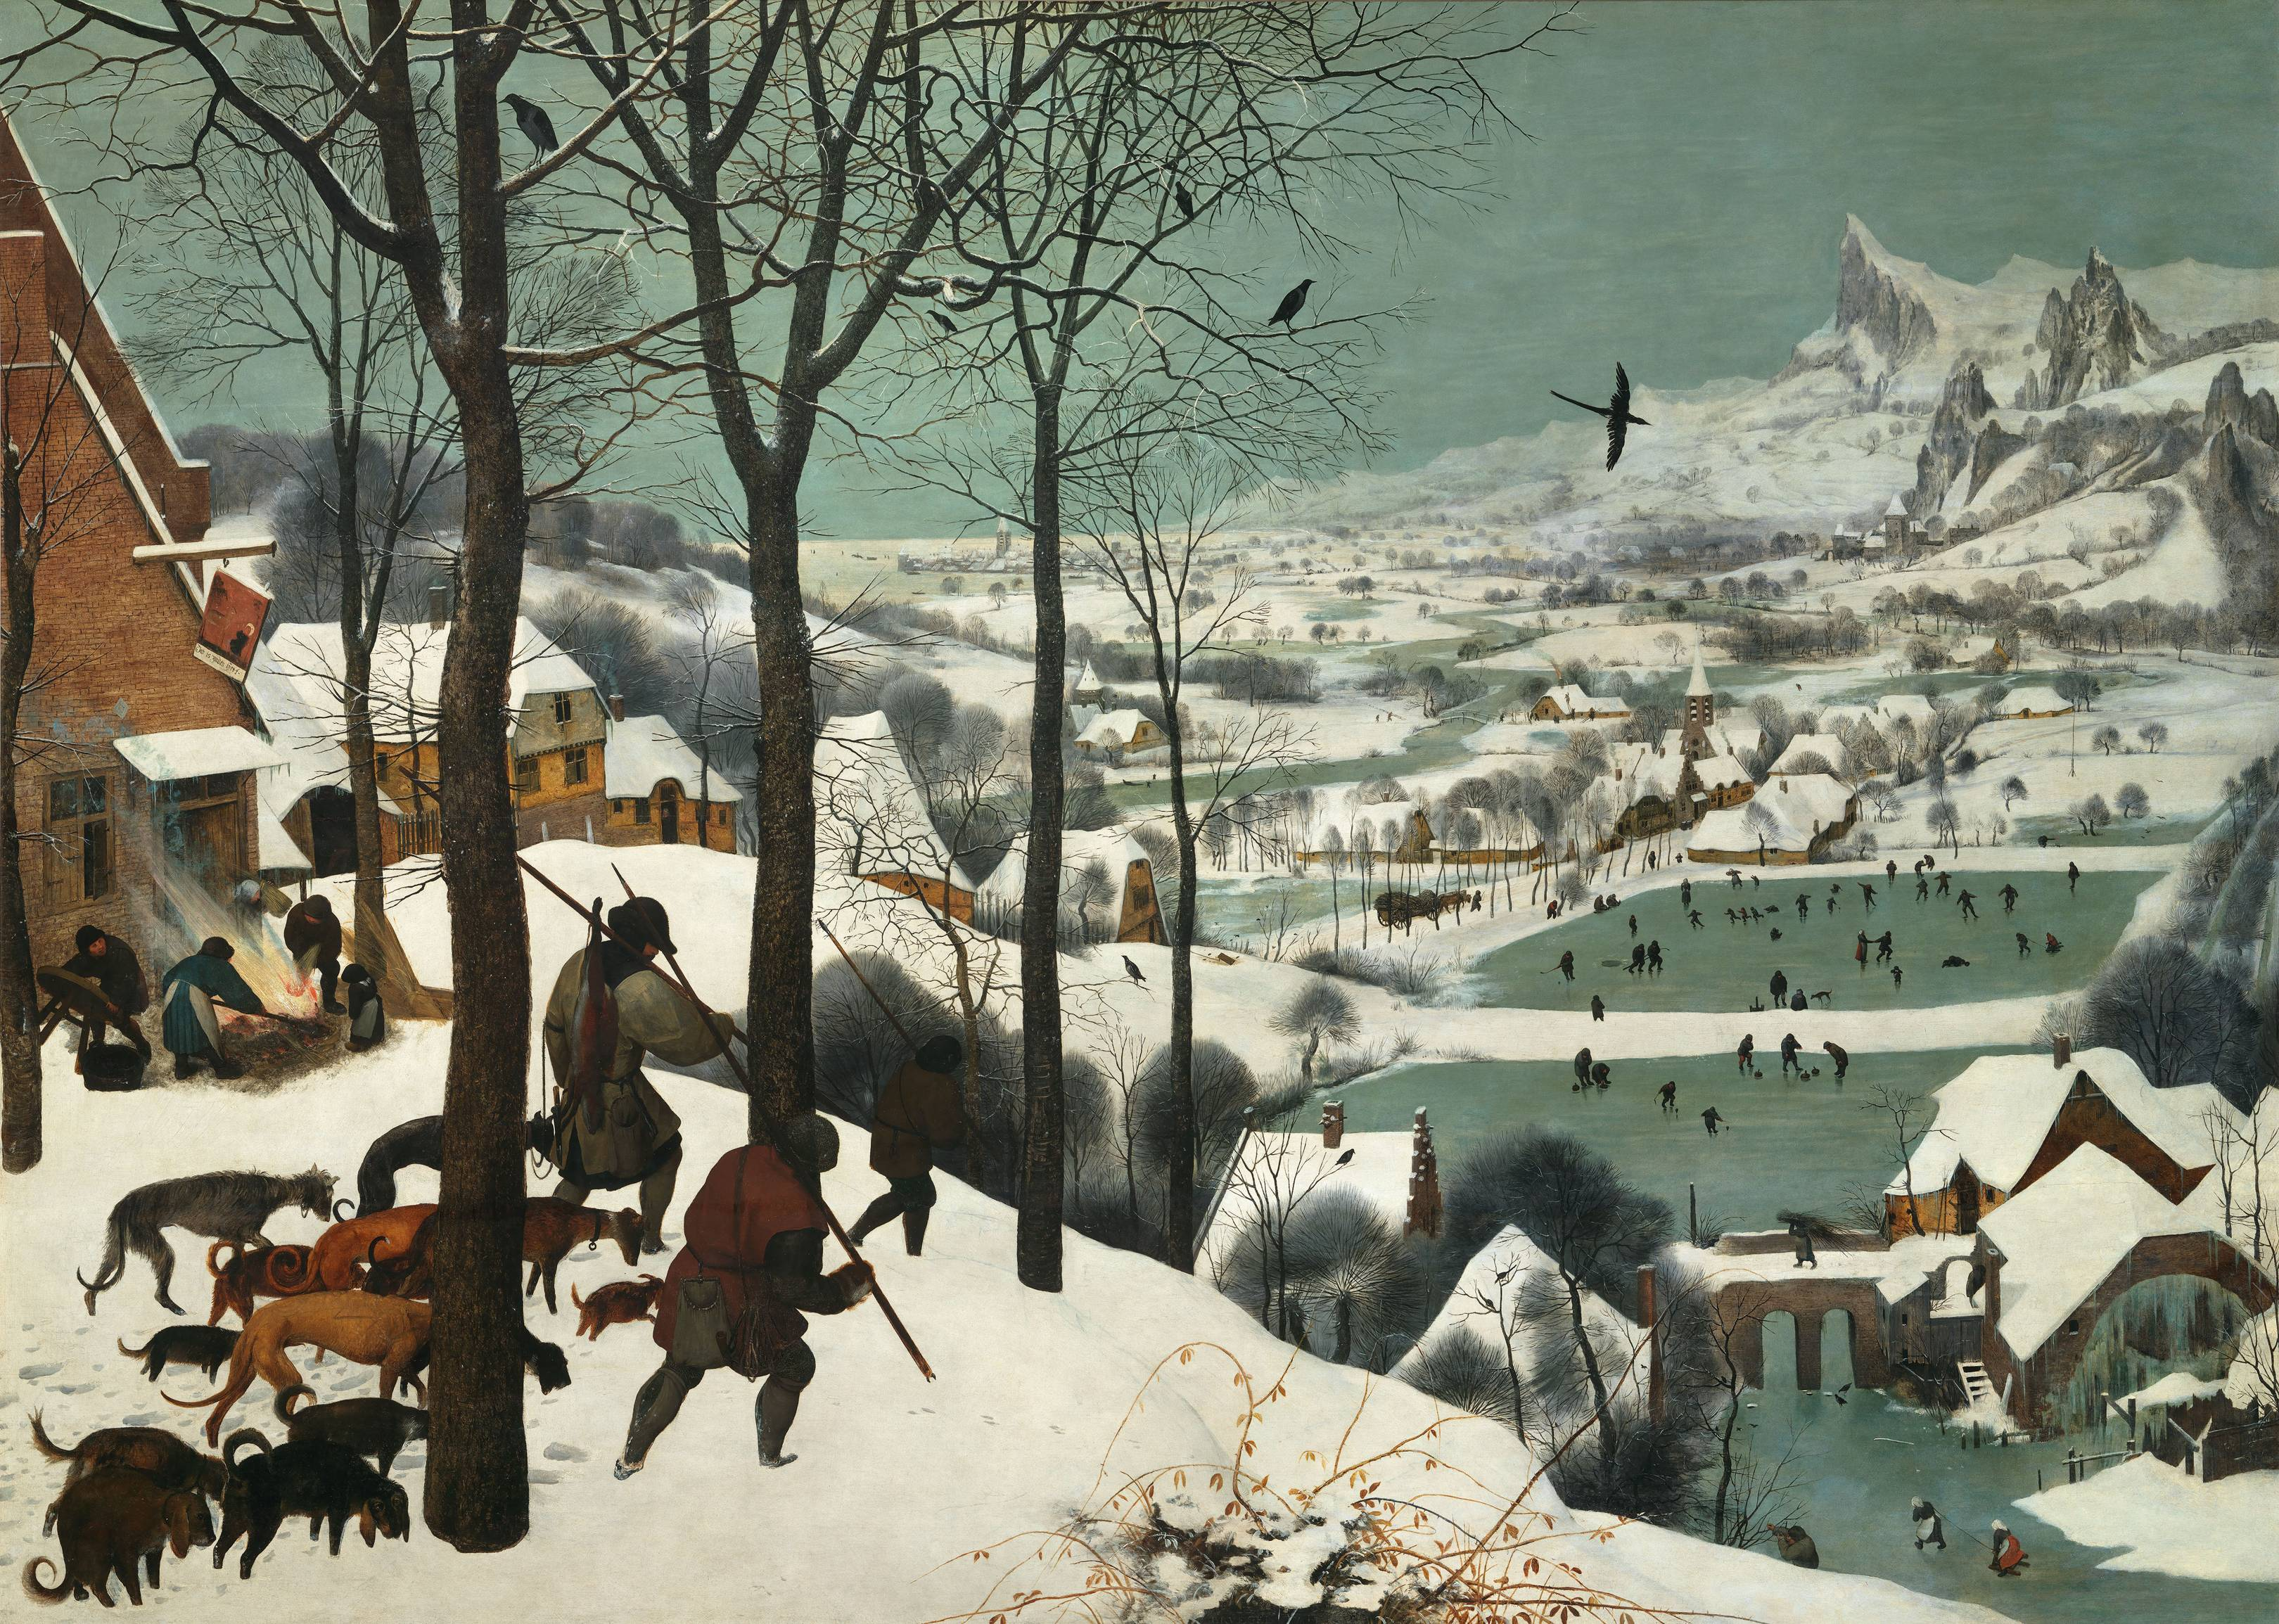 Taschen is releasing a monumental new monograph of Pieter Bruegel's complete works